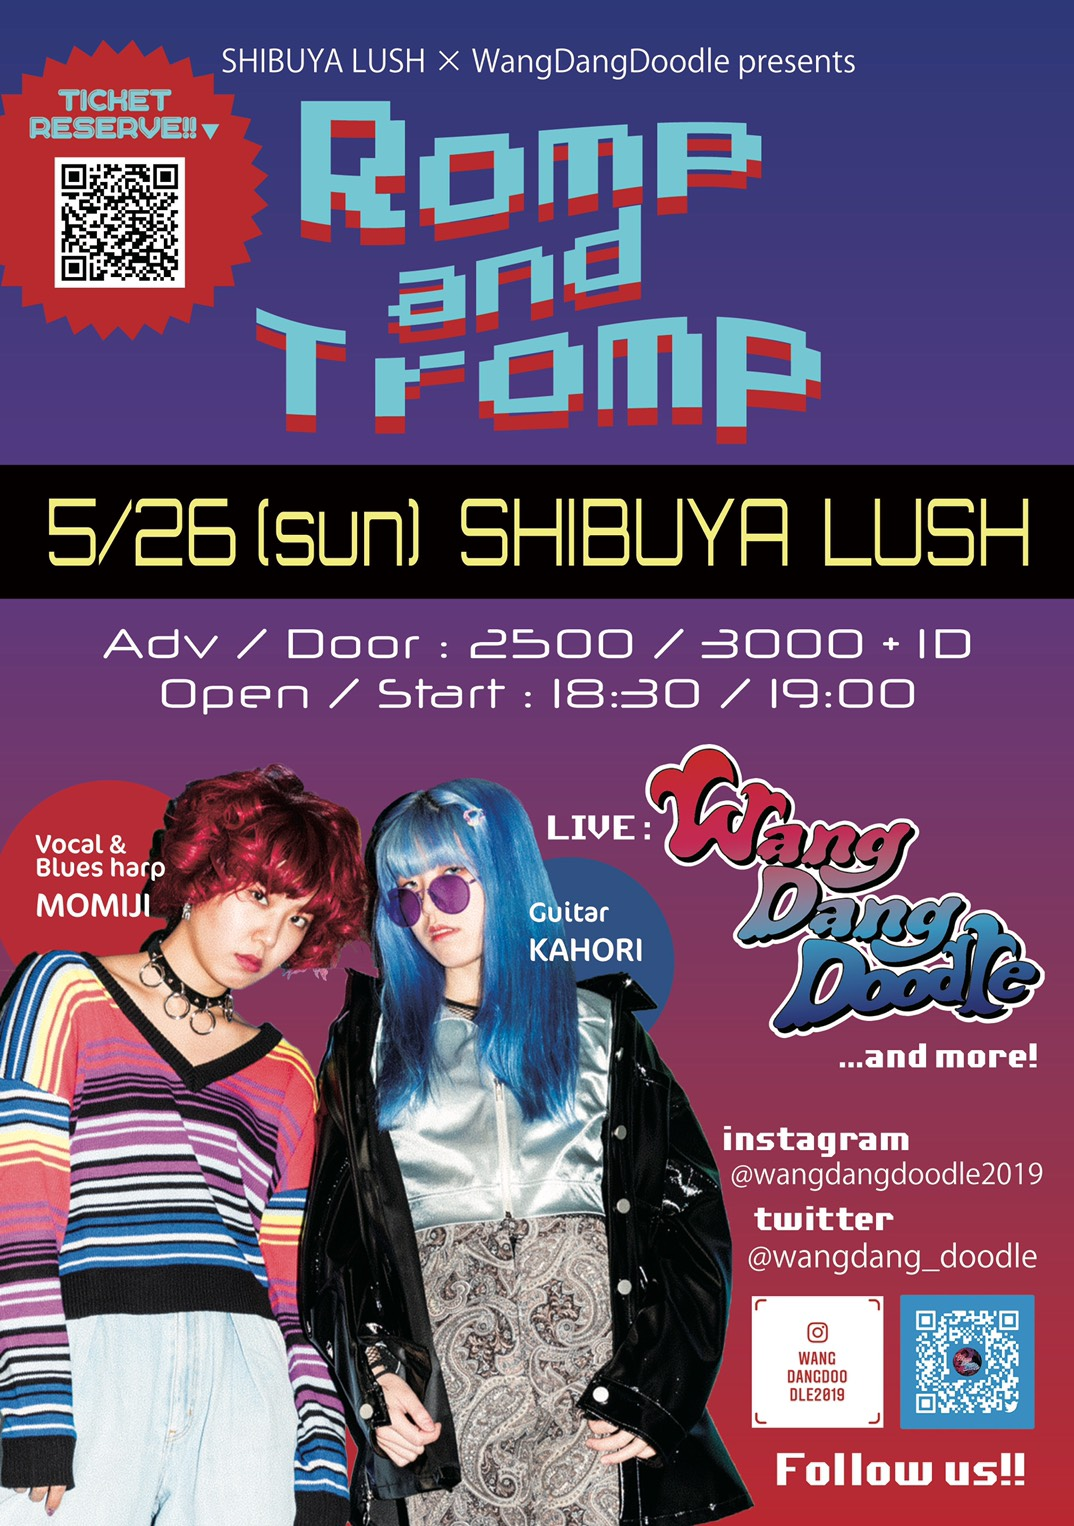 WangDangDoodle × SHIBUYA LUSH presents 『Romp and Tromp』